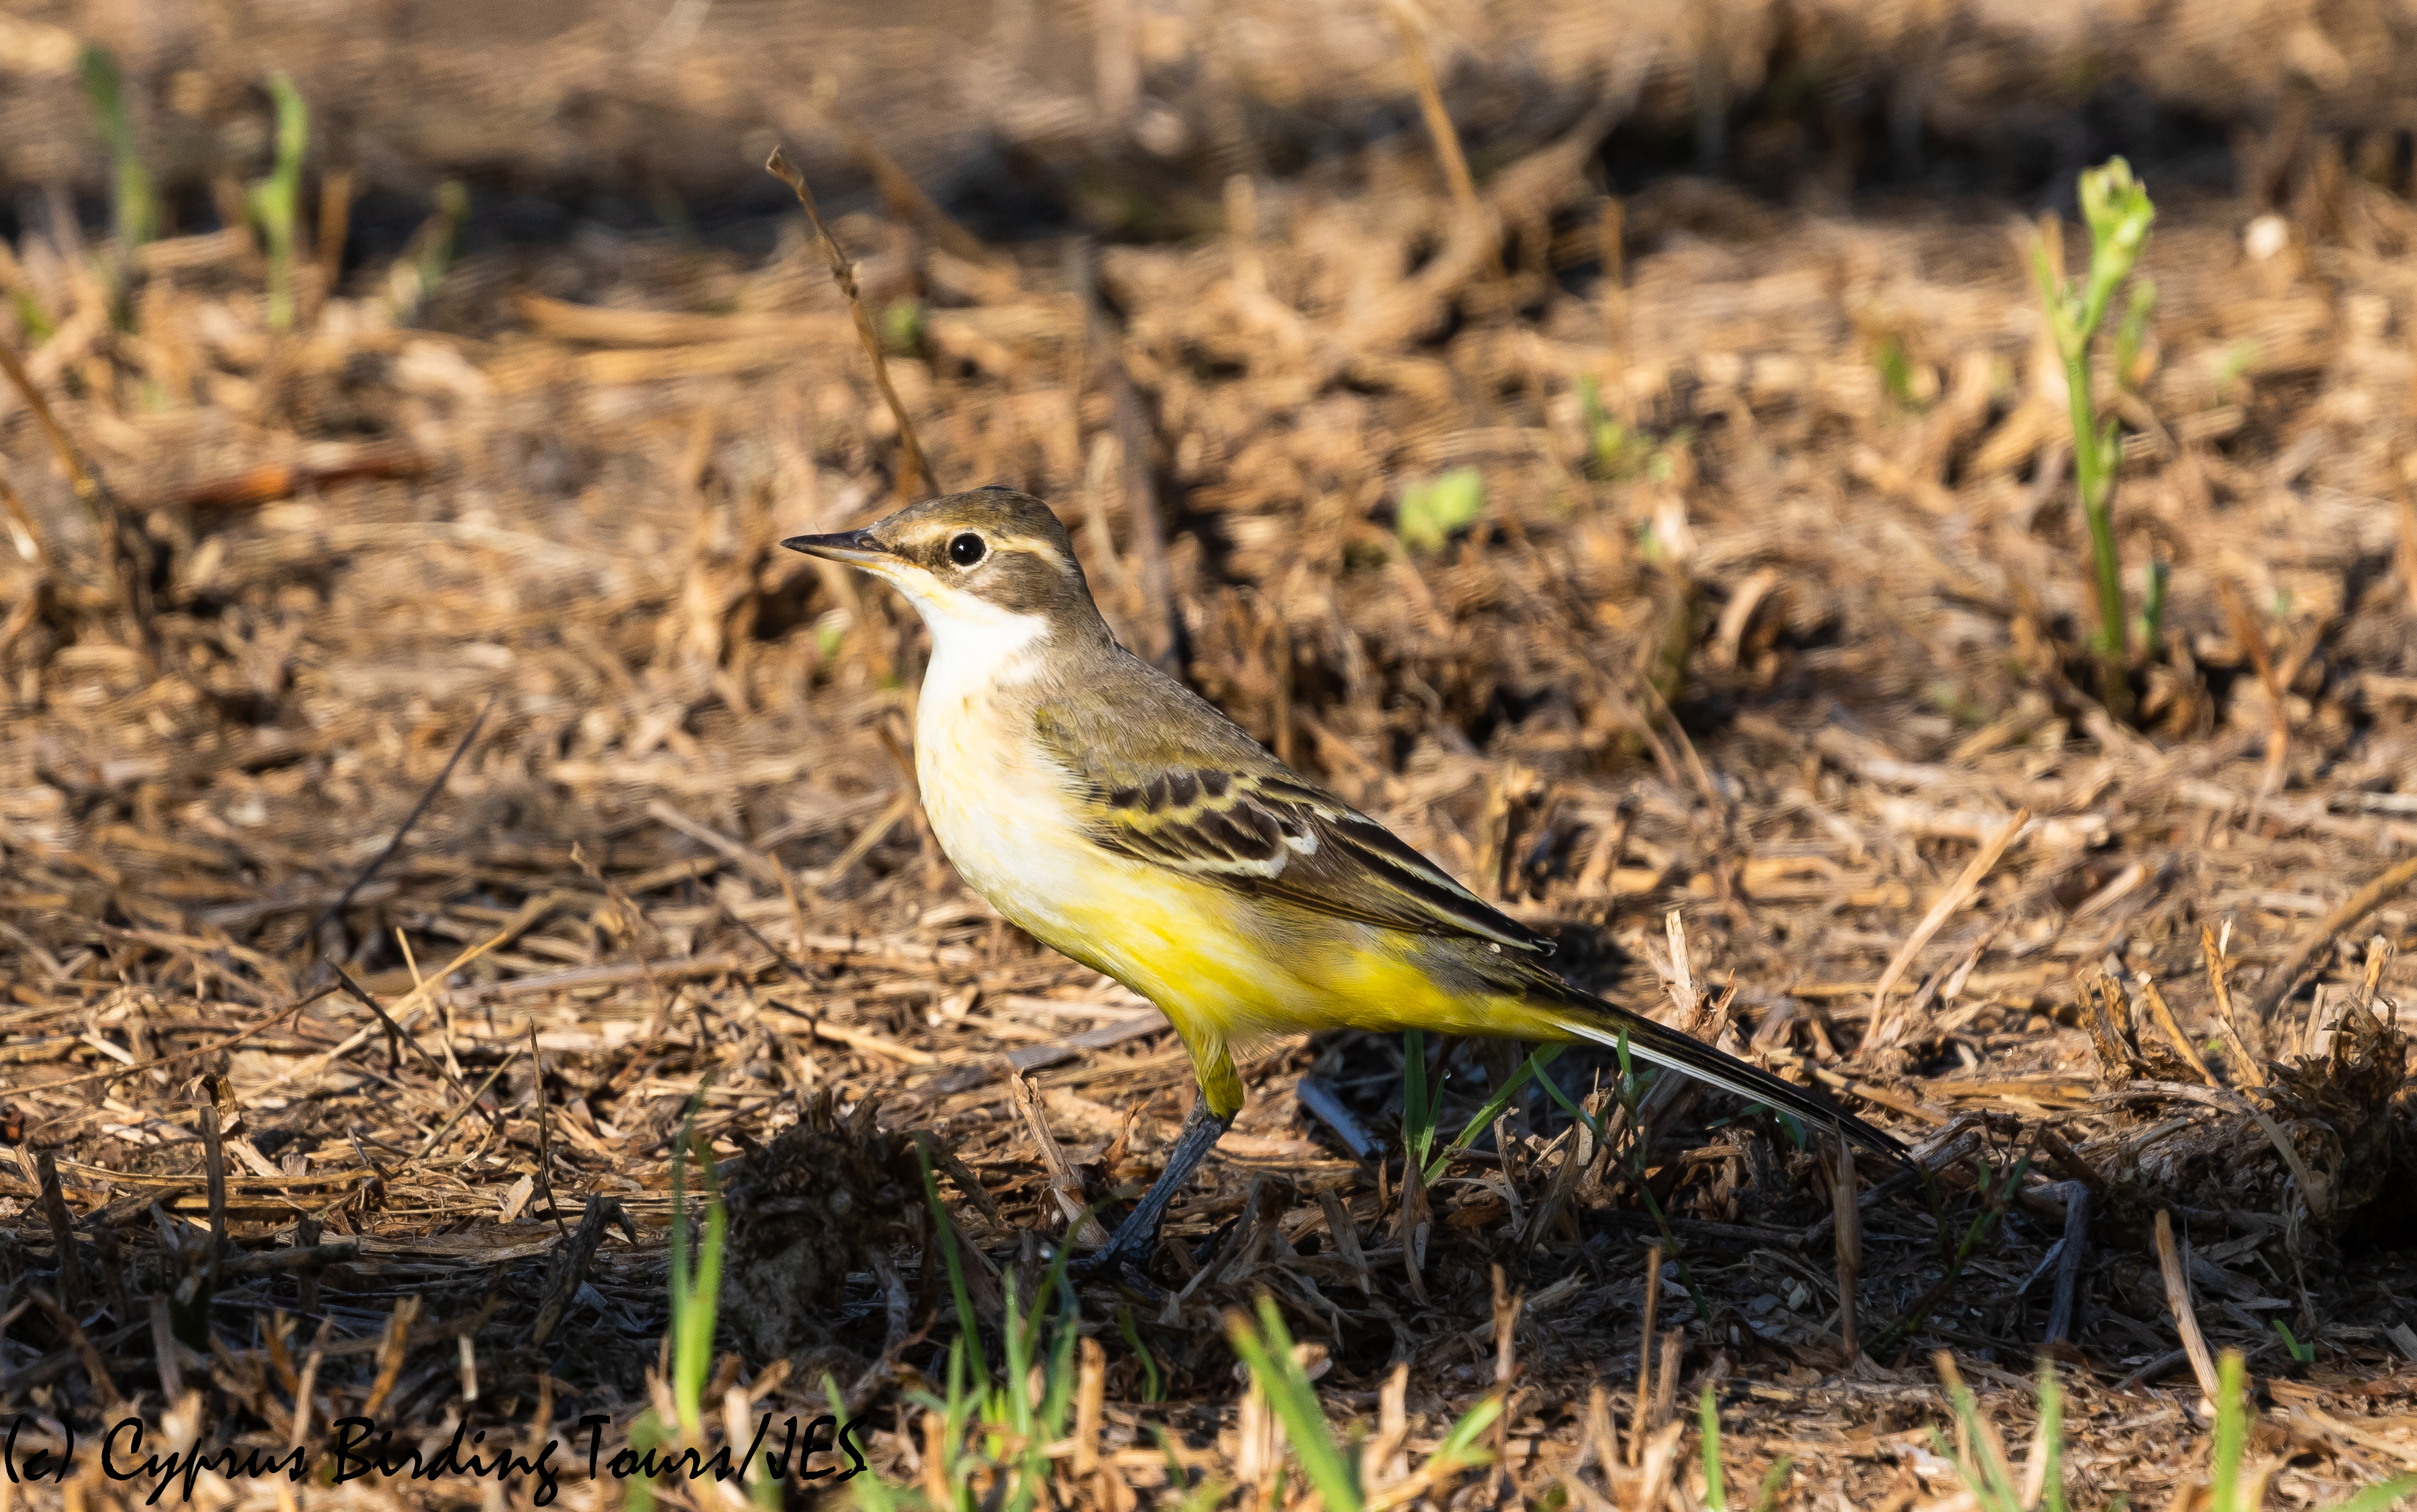 Western Yellow Wagtail 2, Pervolia 21st August 2020 (c) Cyprus Birding Tours